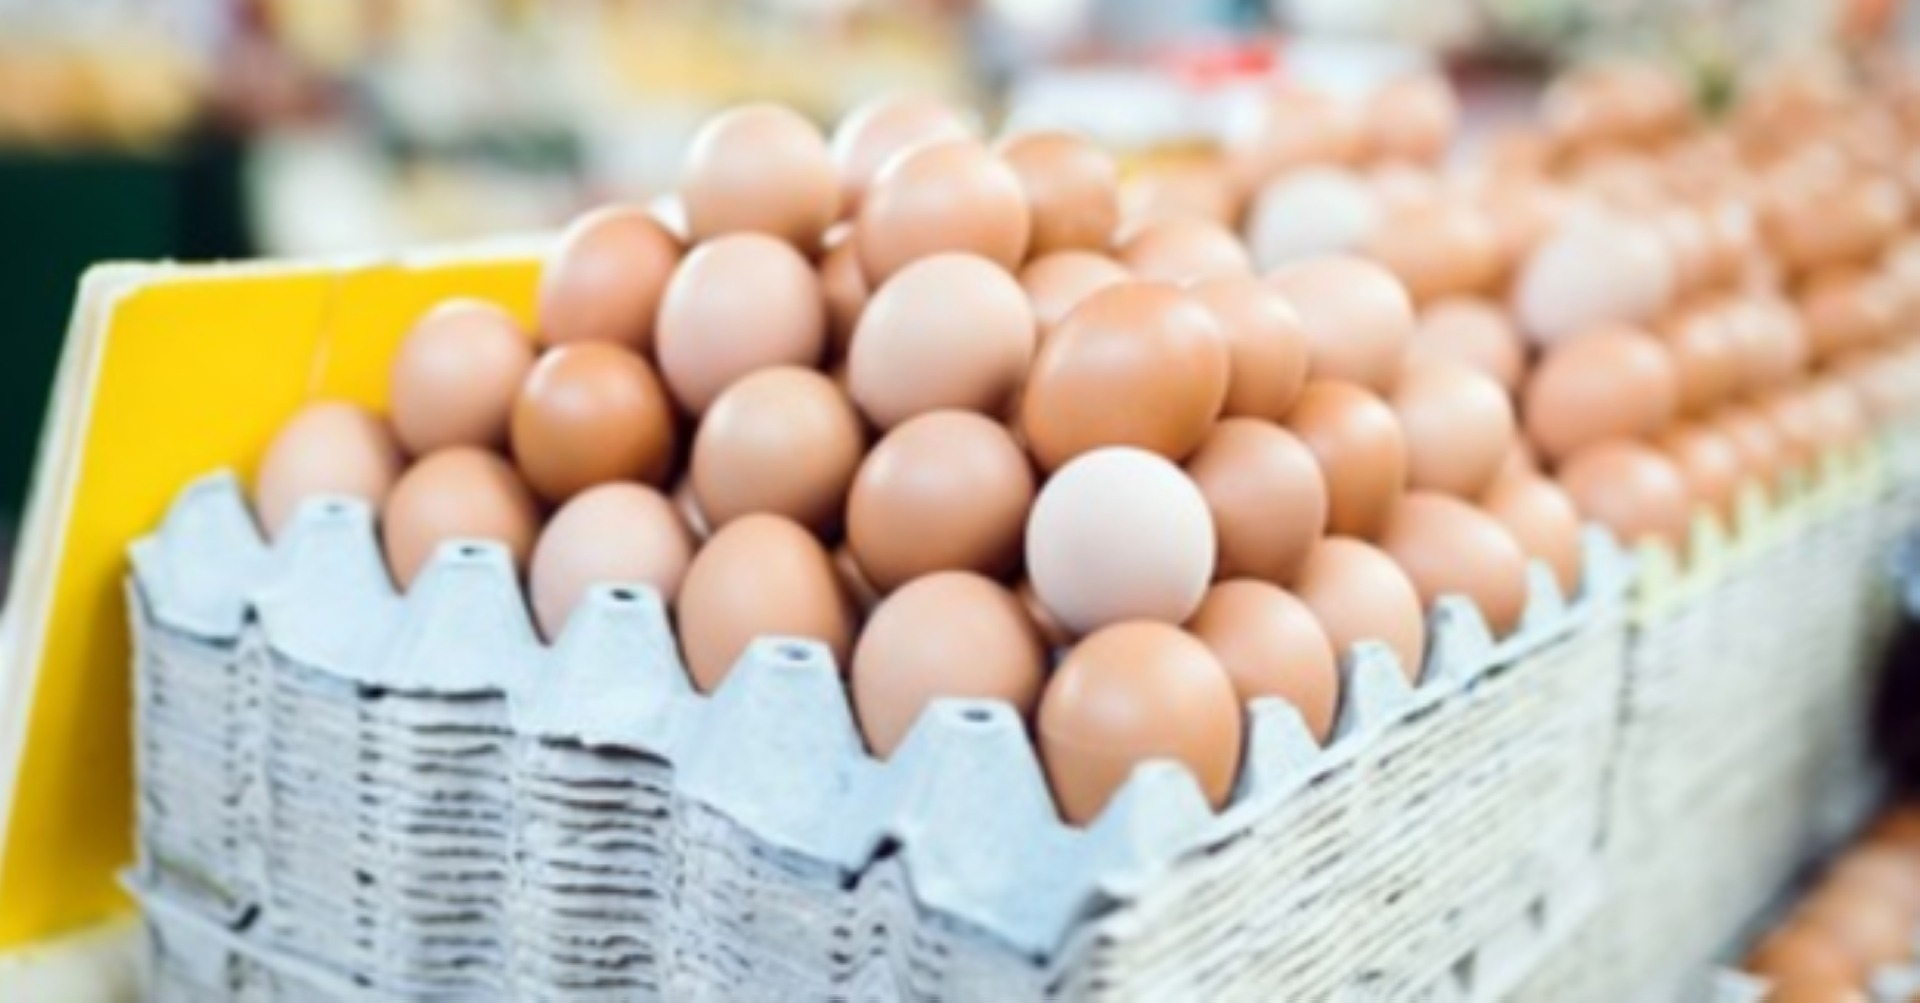 man-dies-after-eating-41-eggs-in-the-challenge